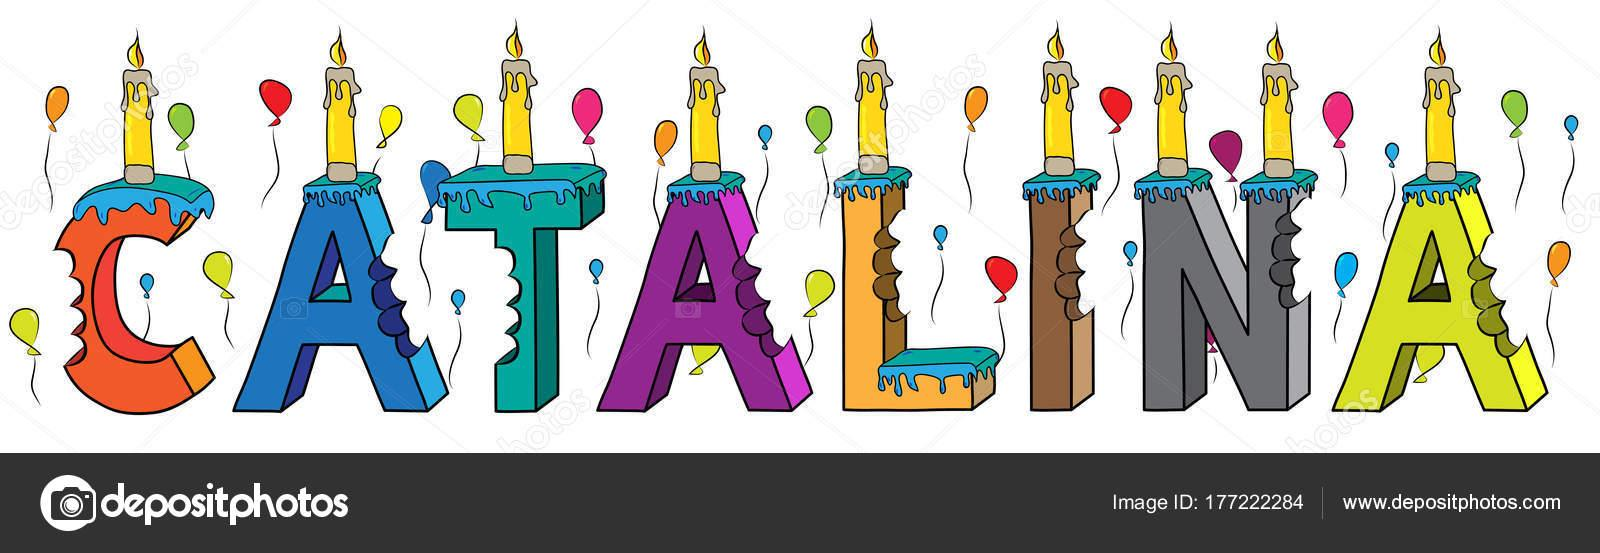 Image result for happy birthday catalina clipart